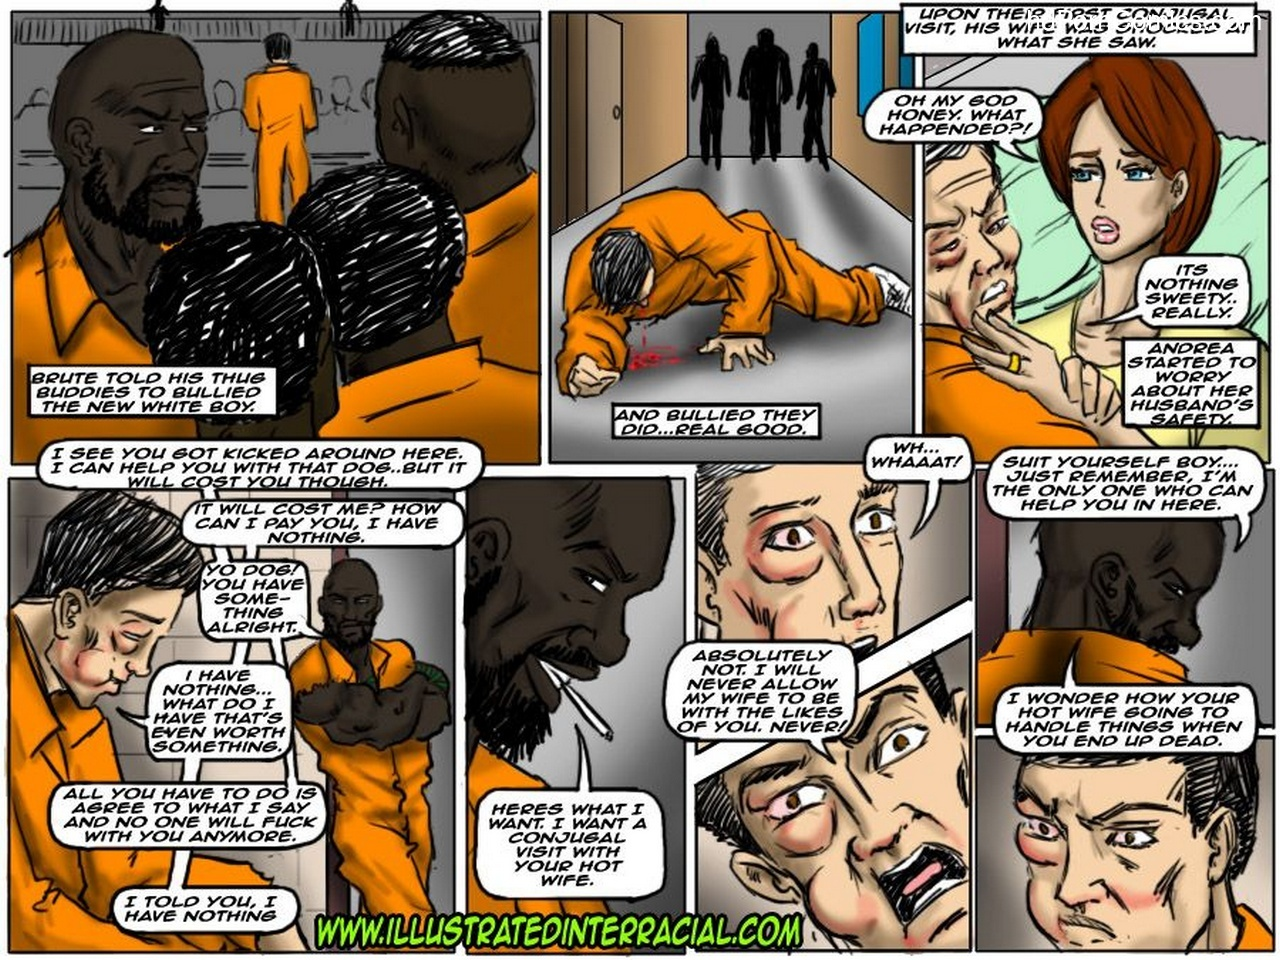 Wife-Gets-Pounded-While-Husband-s-Impounded3 free sex comic